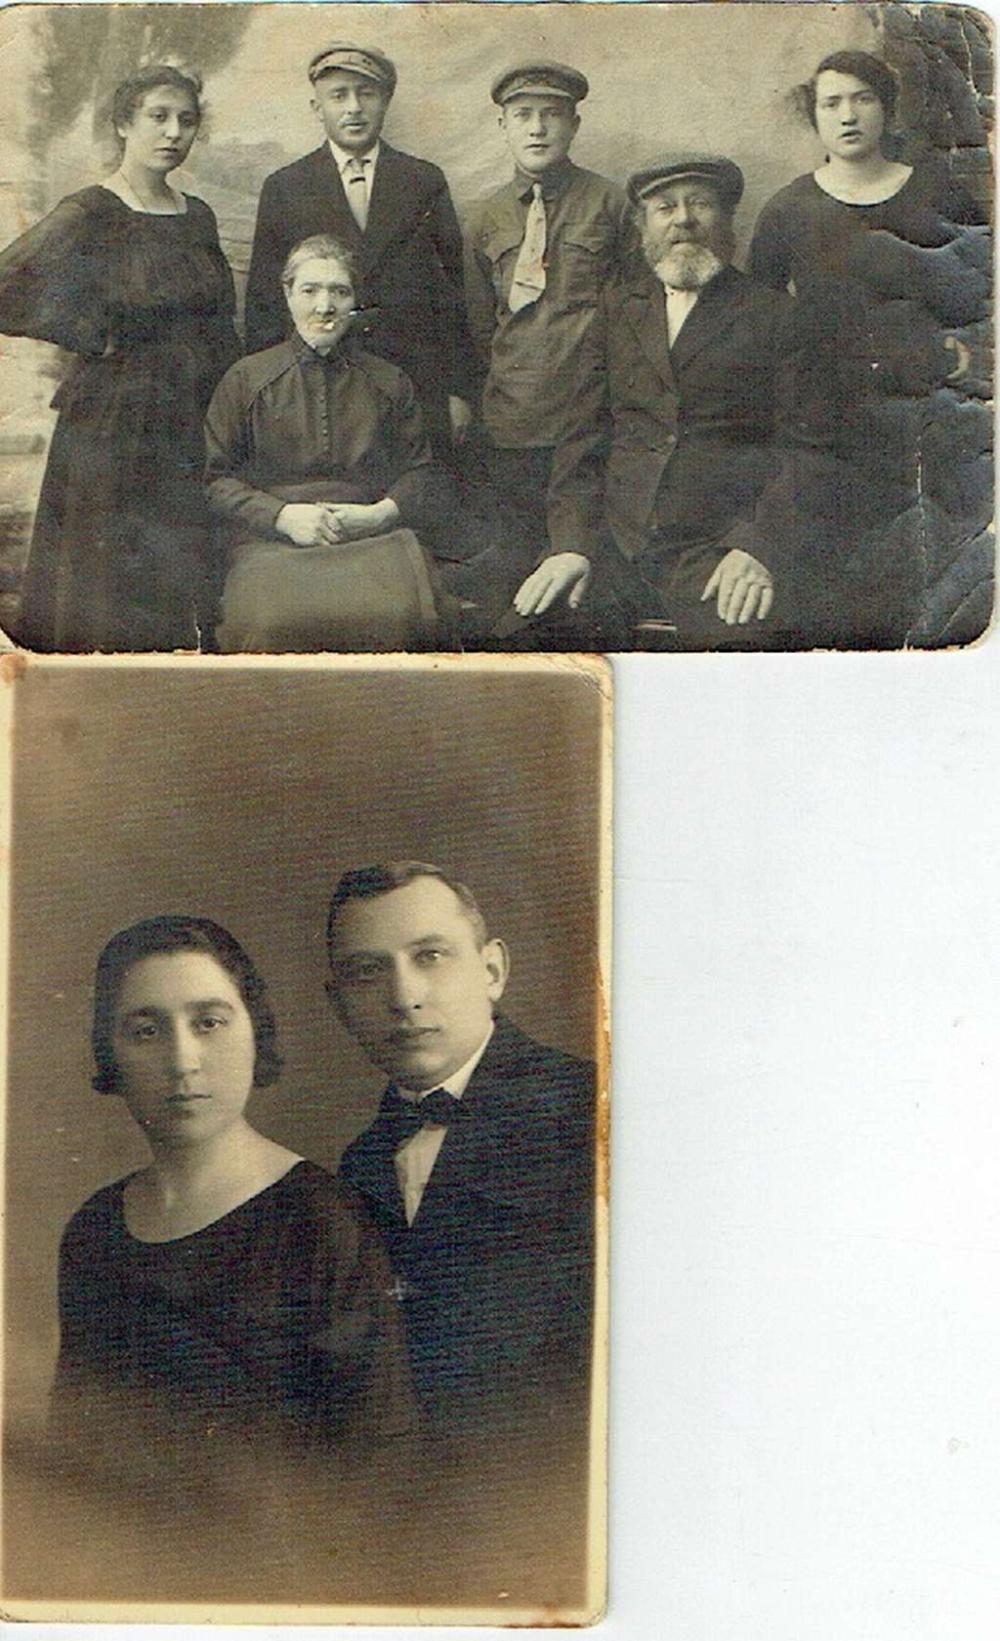 2 antique photos of a Jewish family from Bialystok, Poland, in Yiddish